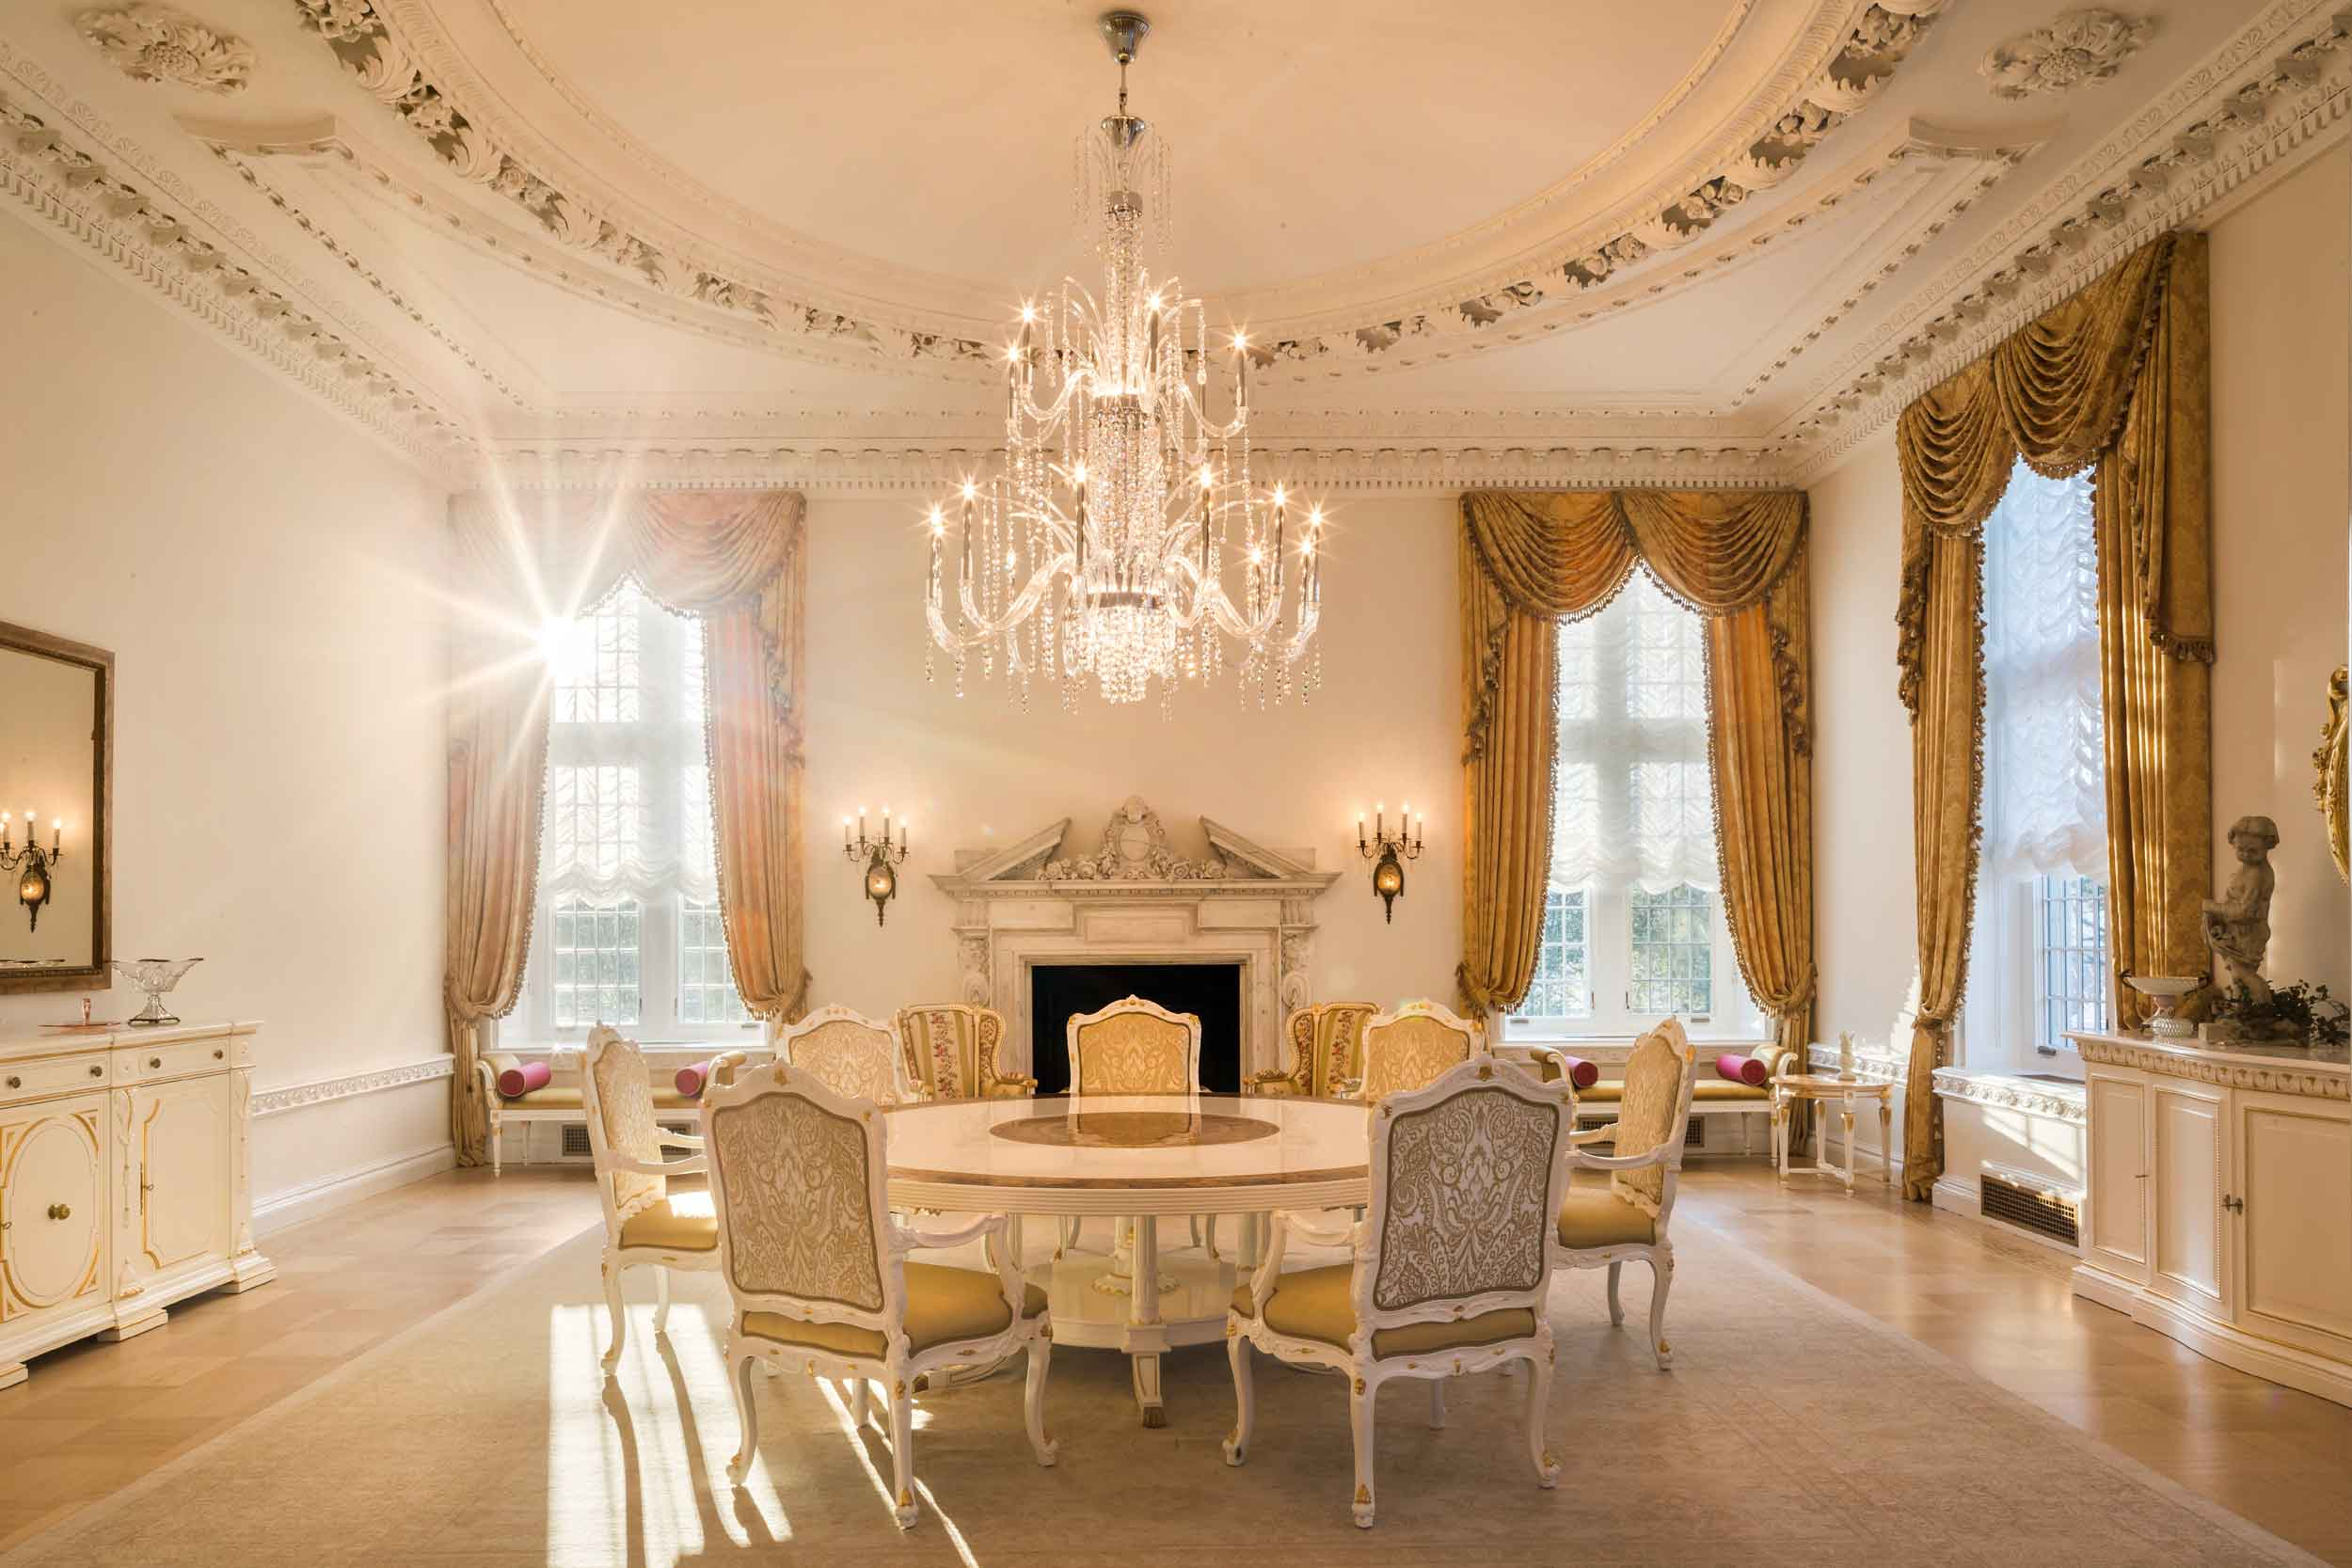 Darlington's grand appointments include a tea room (seen here), wine cellar and tasting room, cigar room, billiard room with bar, poker room, theater, luxury spa with lap pool, steam room and sauna, tennis court, and an outdoor pool with cabana.